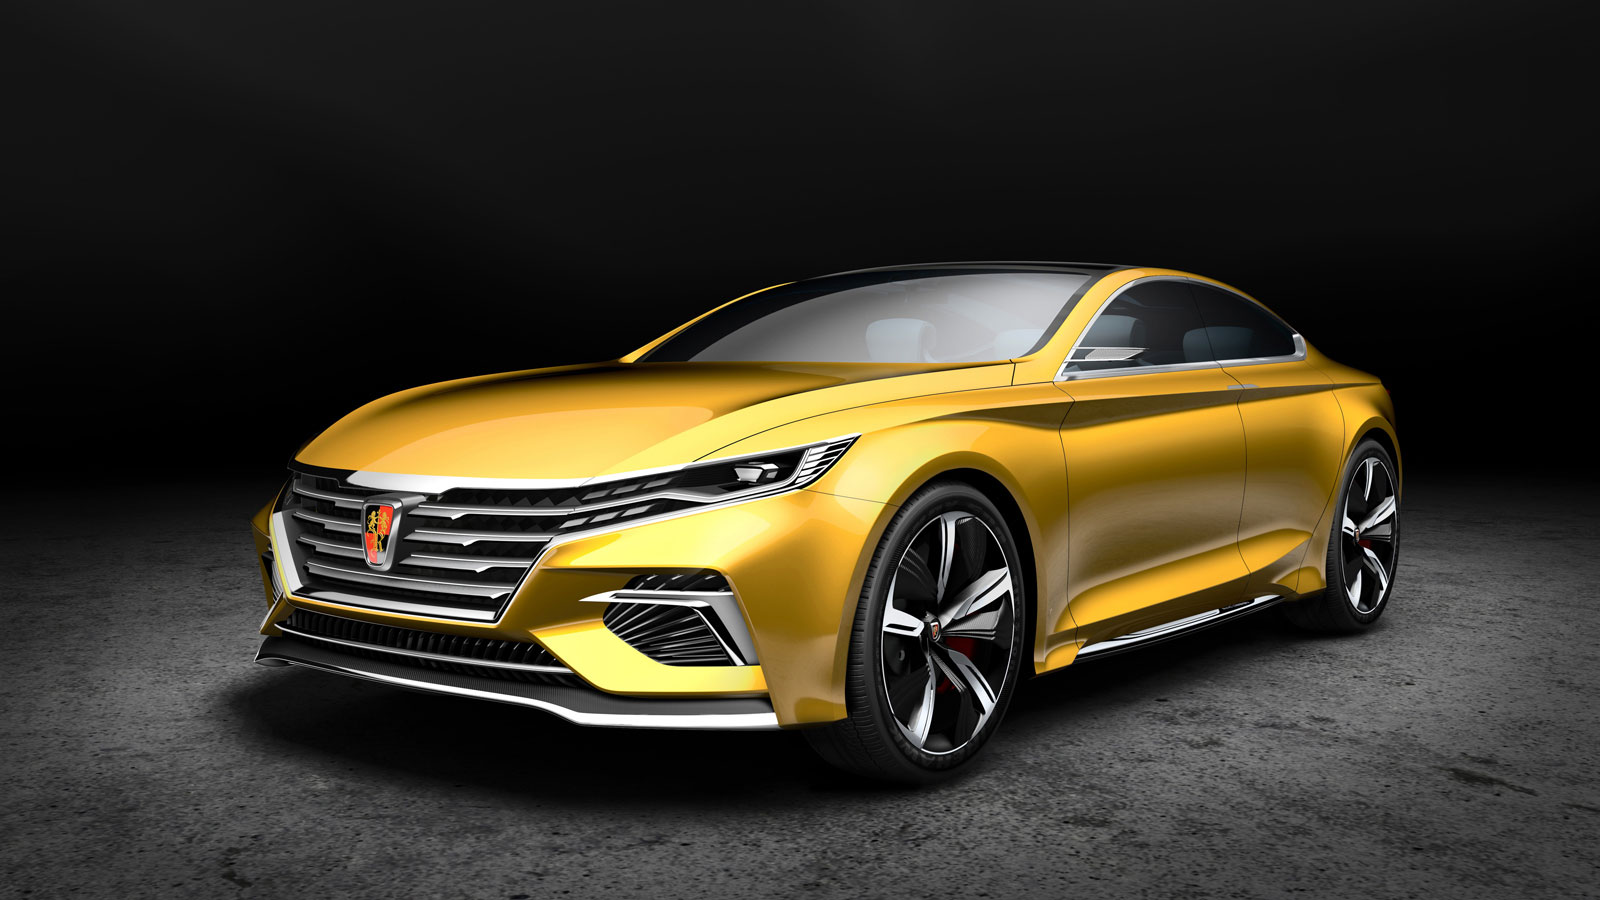 Roewe Defines New Design Direction With Vision-R Concept